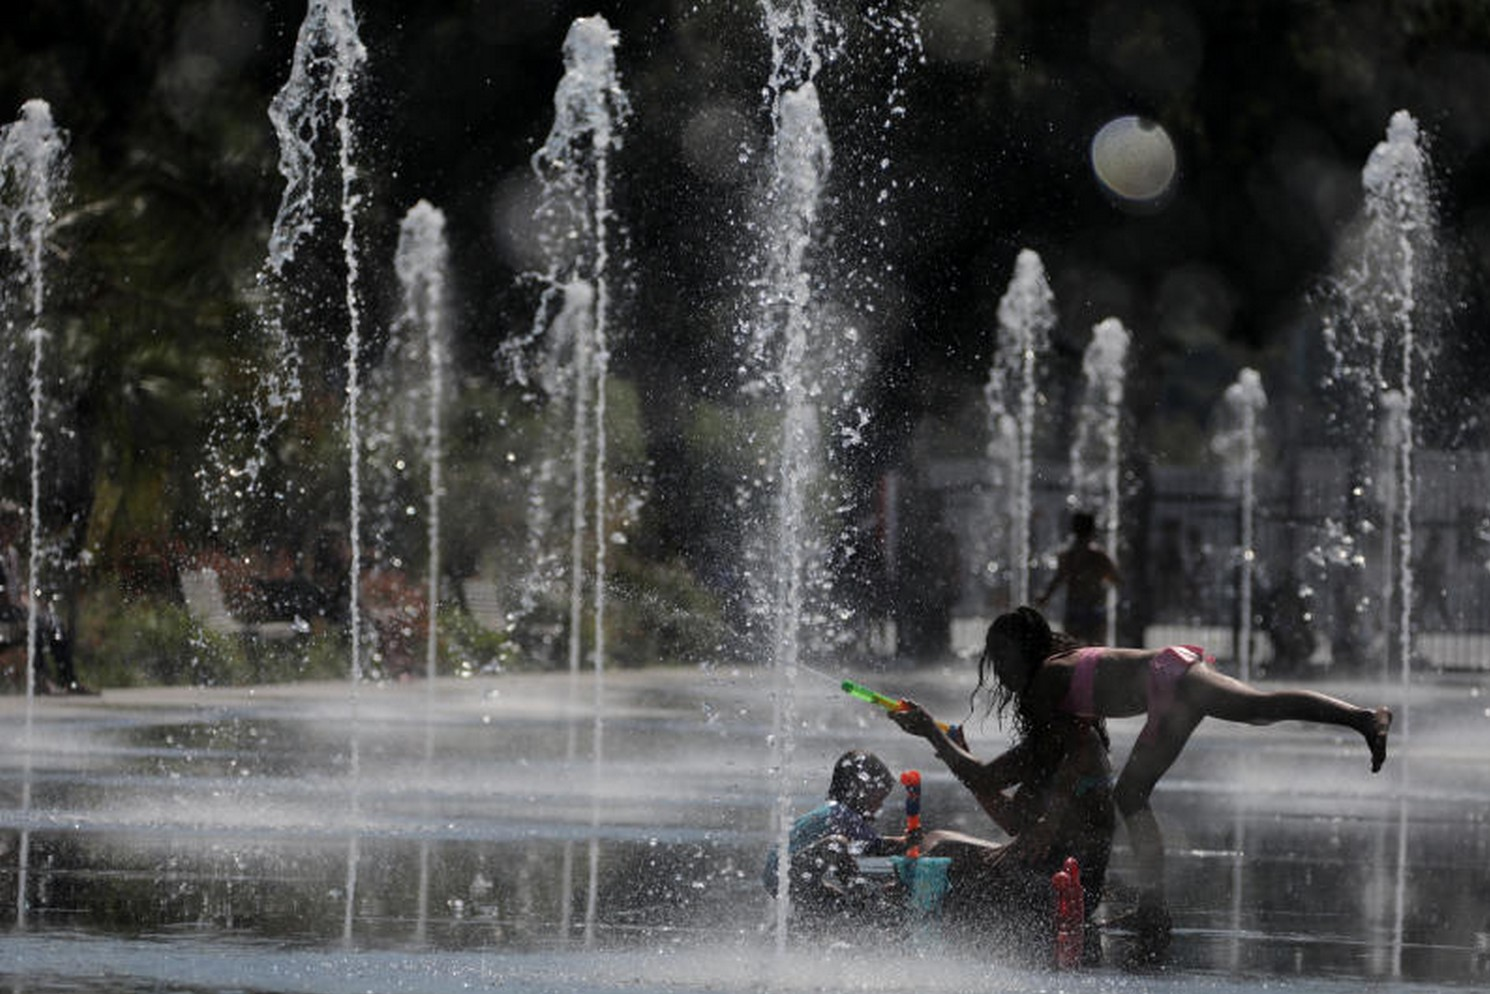 People cool off in a fountain in Nice, France, on Thursday as a heatwave continues over much of Europe. (Photo: Reuters)